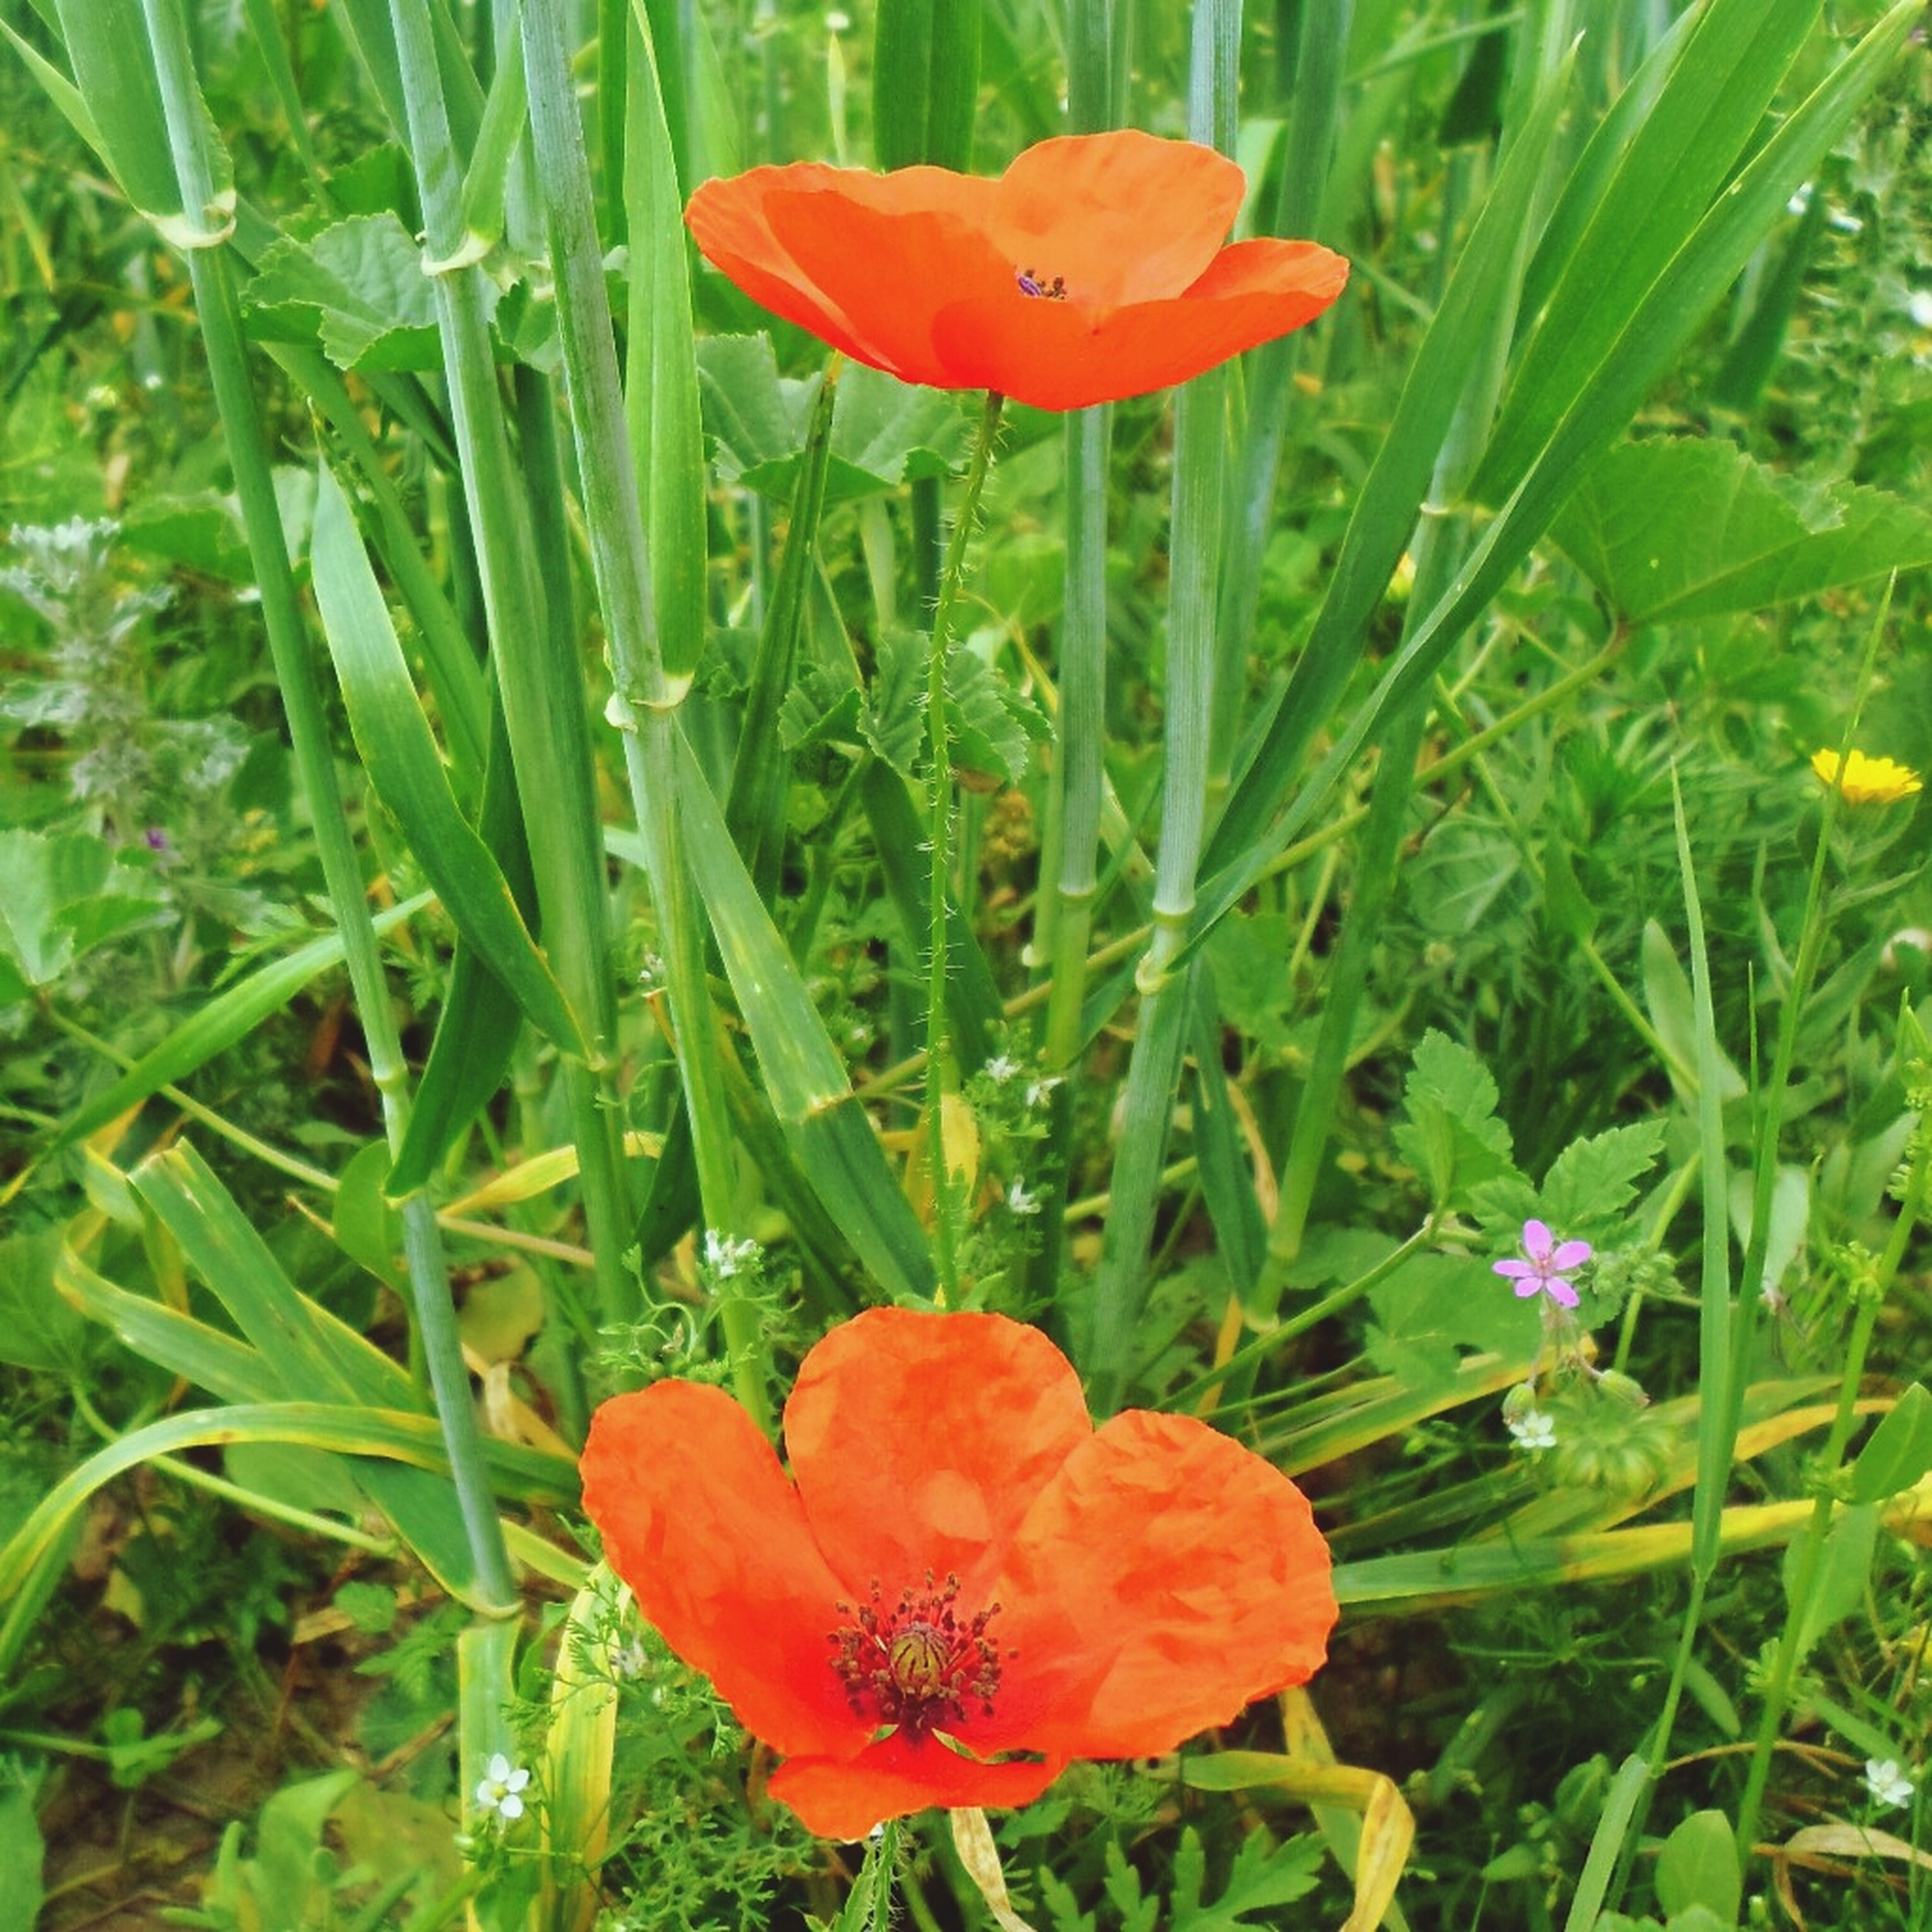 flower, freshness, petal, fragility, flower head, growth, beauty in nature, red, blooming, plant, poppy, nature, field, tulip, close-up, in bloom, green color, blossom, stamen, orange color